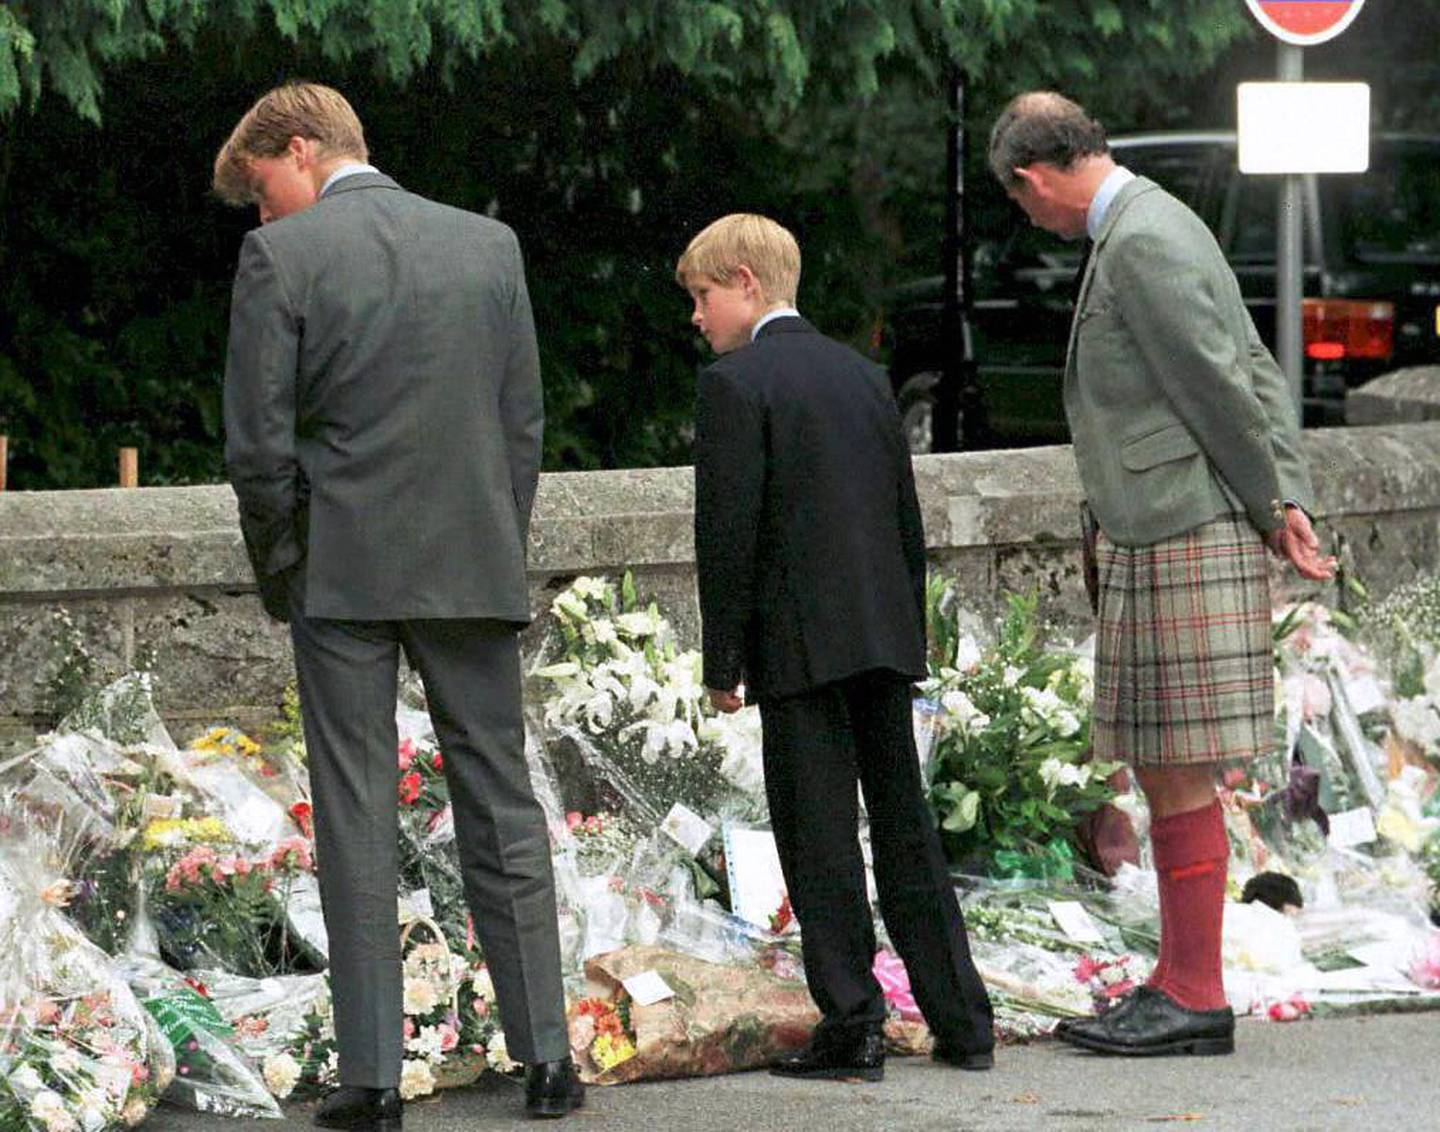 (FILES) This file photo taken on September 4, 1997 shows (L-R) Prince William, Prince Harry and their father the Prince of Wales stopping outside the gates to Balmoral Castle to look at the floral tributes.  Twenty years ago on August 31, 1997, Britain's Diana, Princess of Wales, died in a high-speed car crash in Paris. / AFP PHOTO / PRESS ASSOCIATION / CHRIS BACON